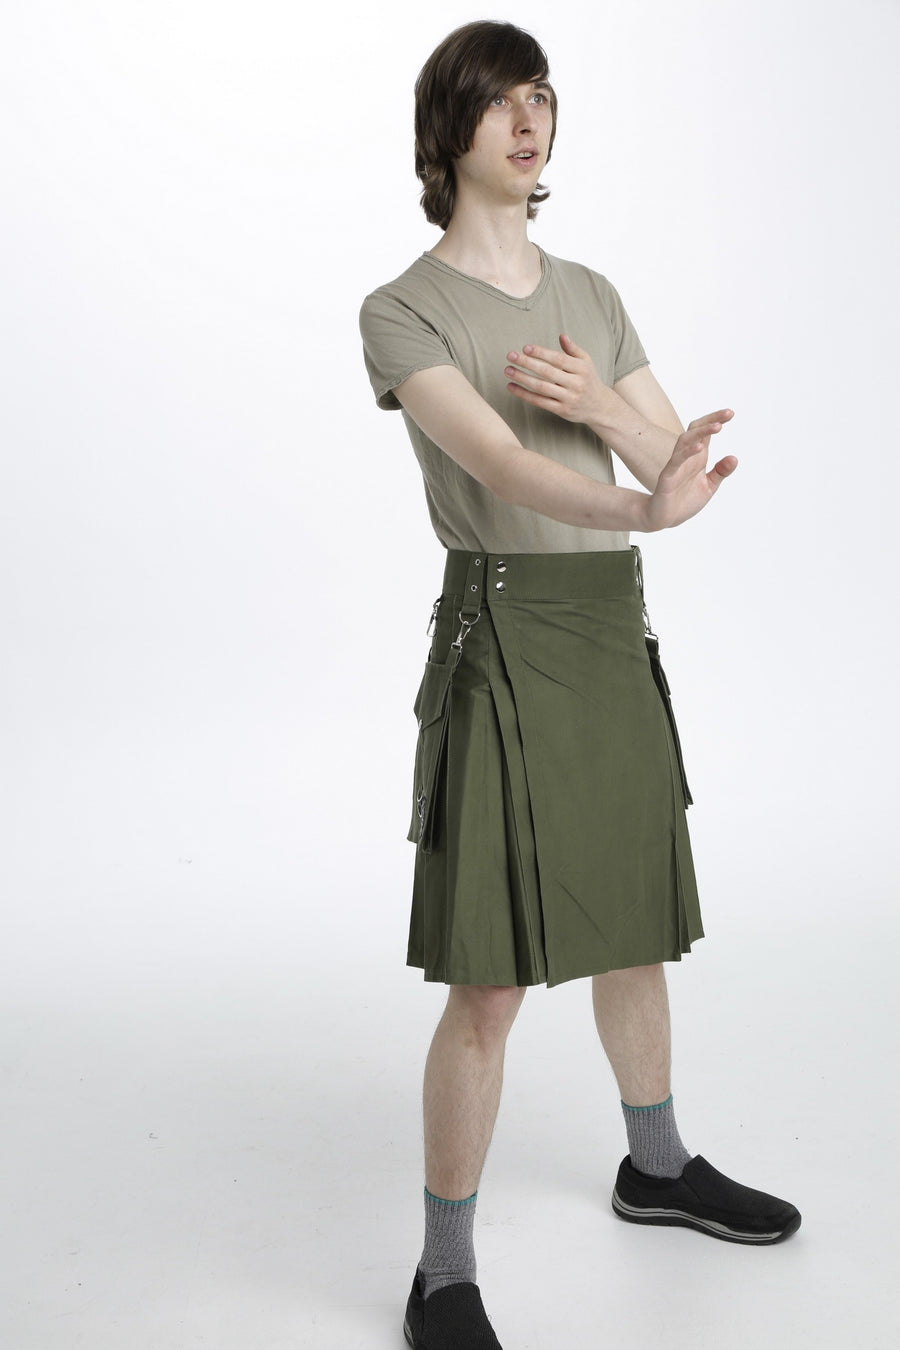 running kilt side view